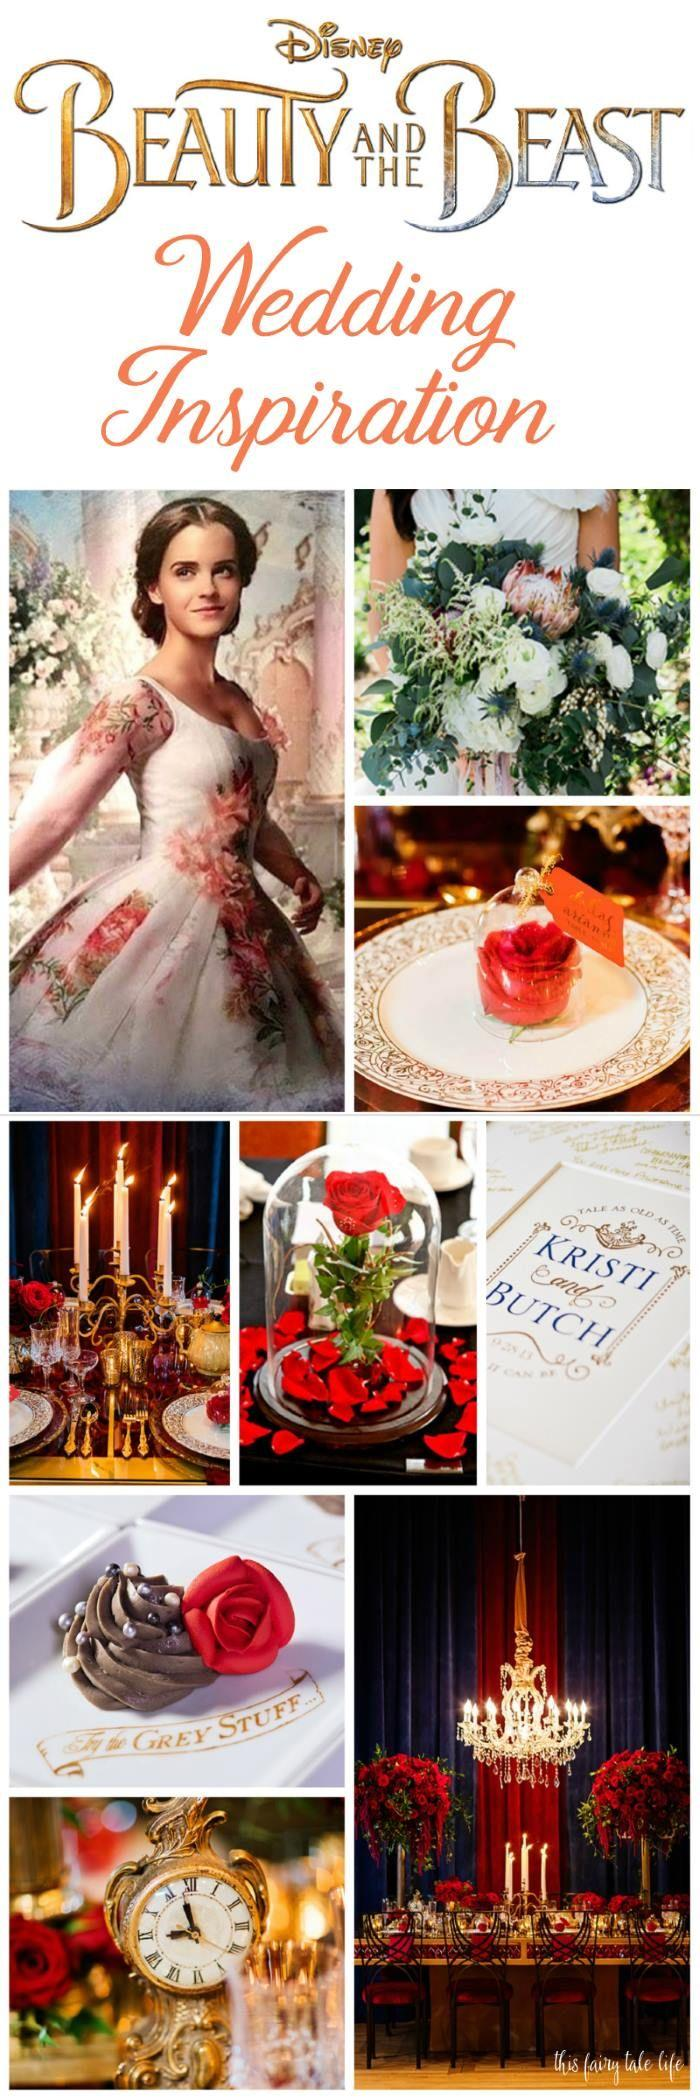 Wedding - Live-Action BEAUTY AND THE BEAST Wedding Inspiration